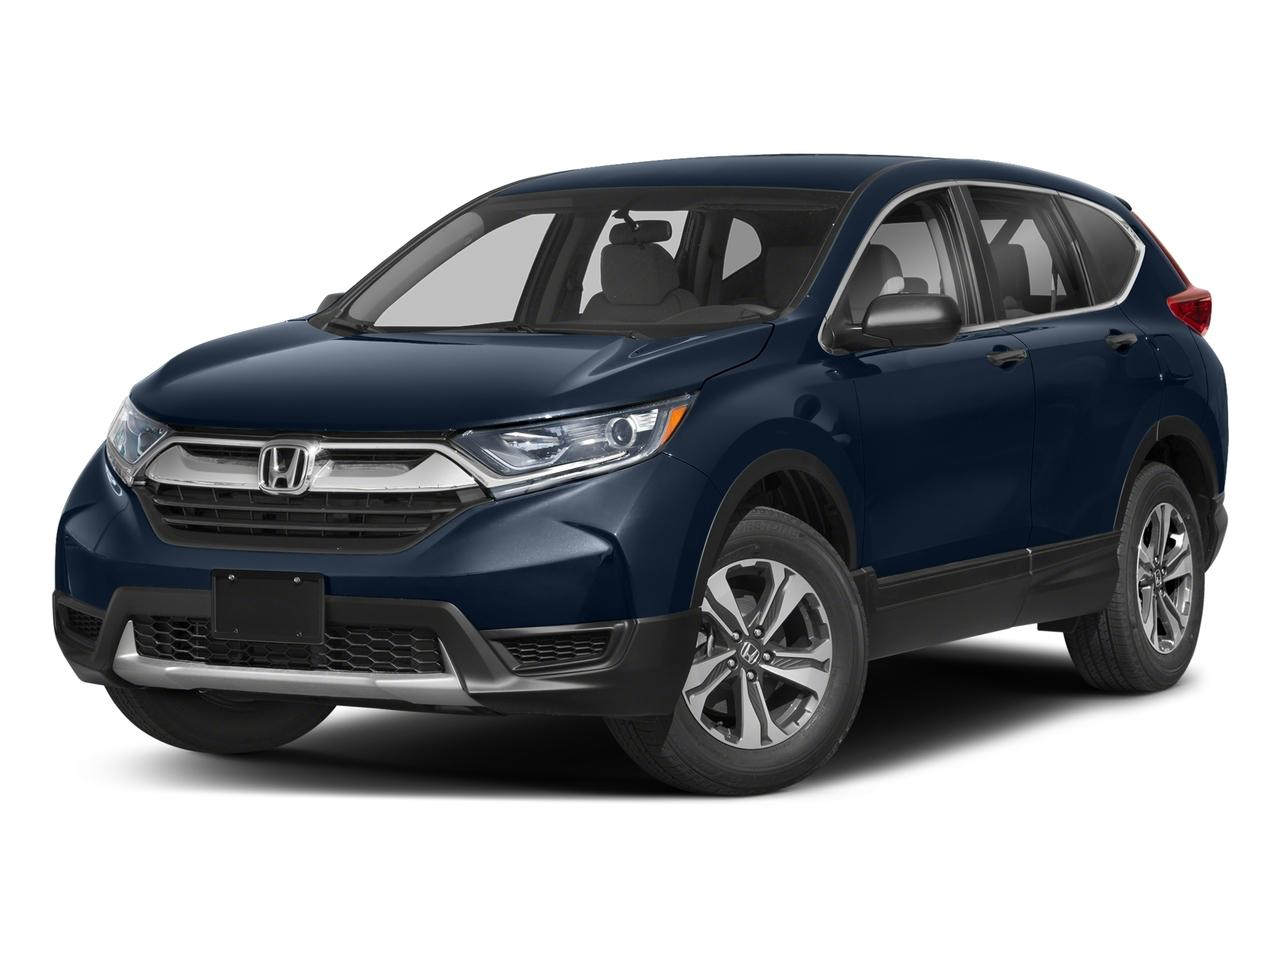 2018 Honda CR-V Vehicle Photo in Oshkosh, WI 54904